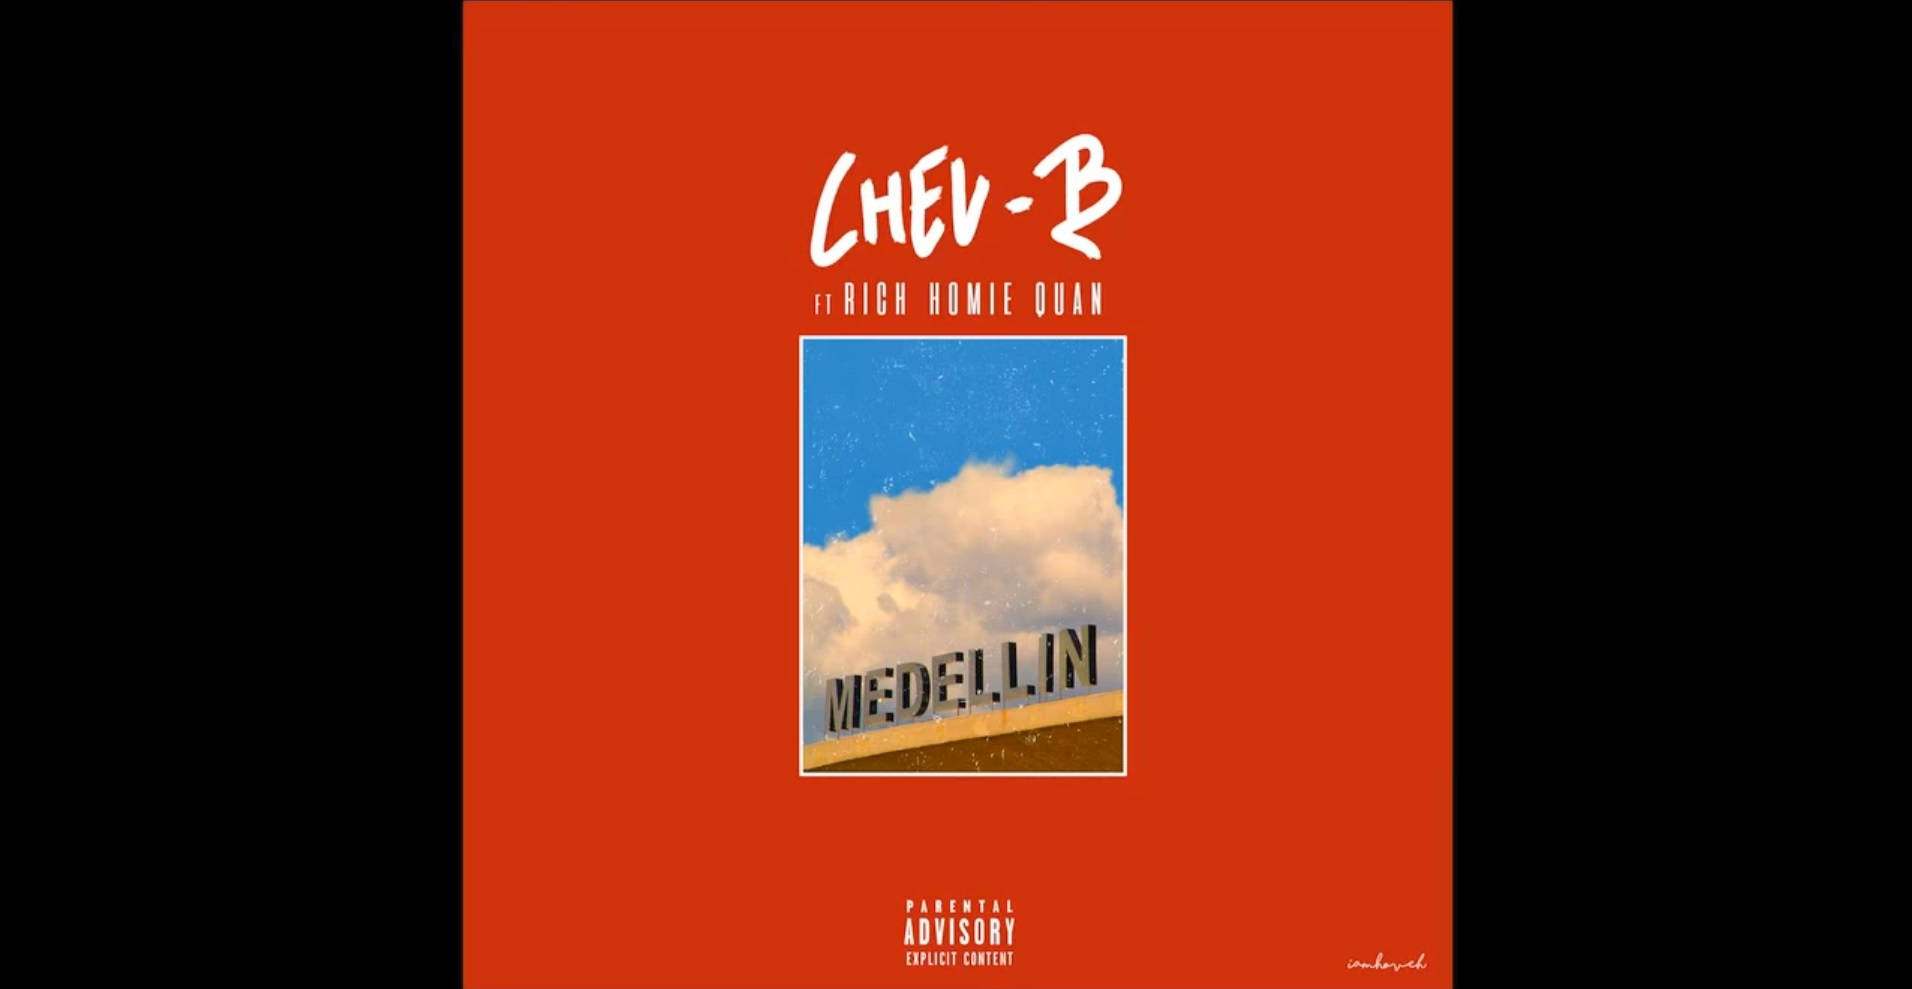 Cheu-B feat Rich Homie Quan – Medellin (Son Officiel)